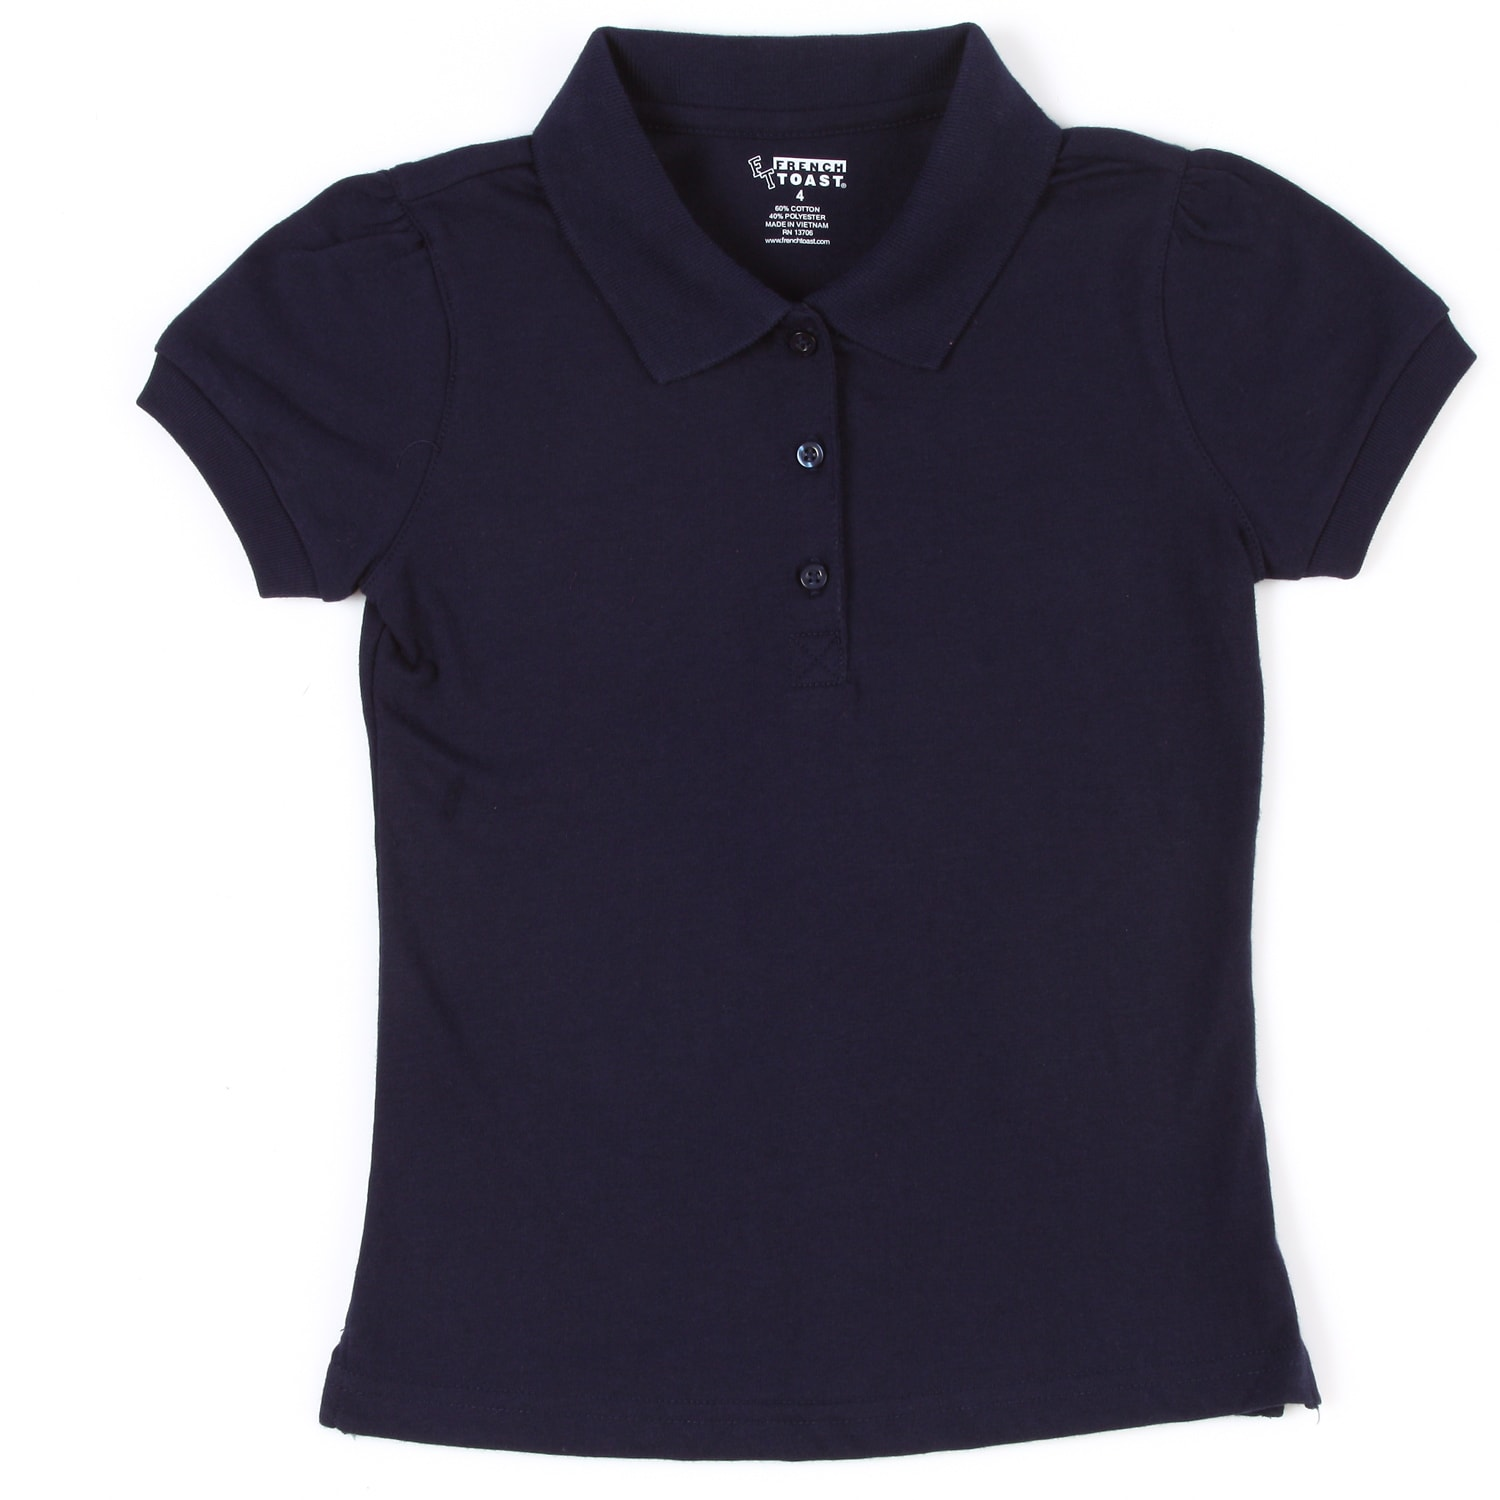 French Toast Girl's School Uniform Polo Size 5 (Set of 2)